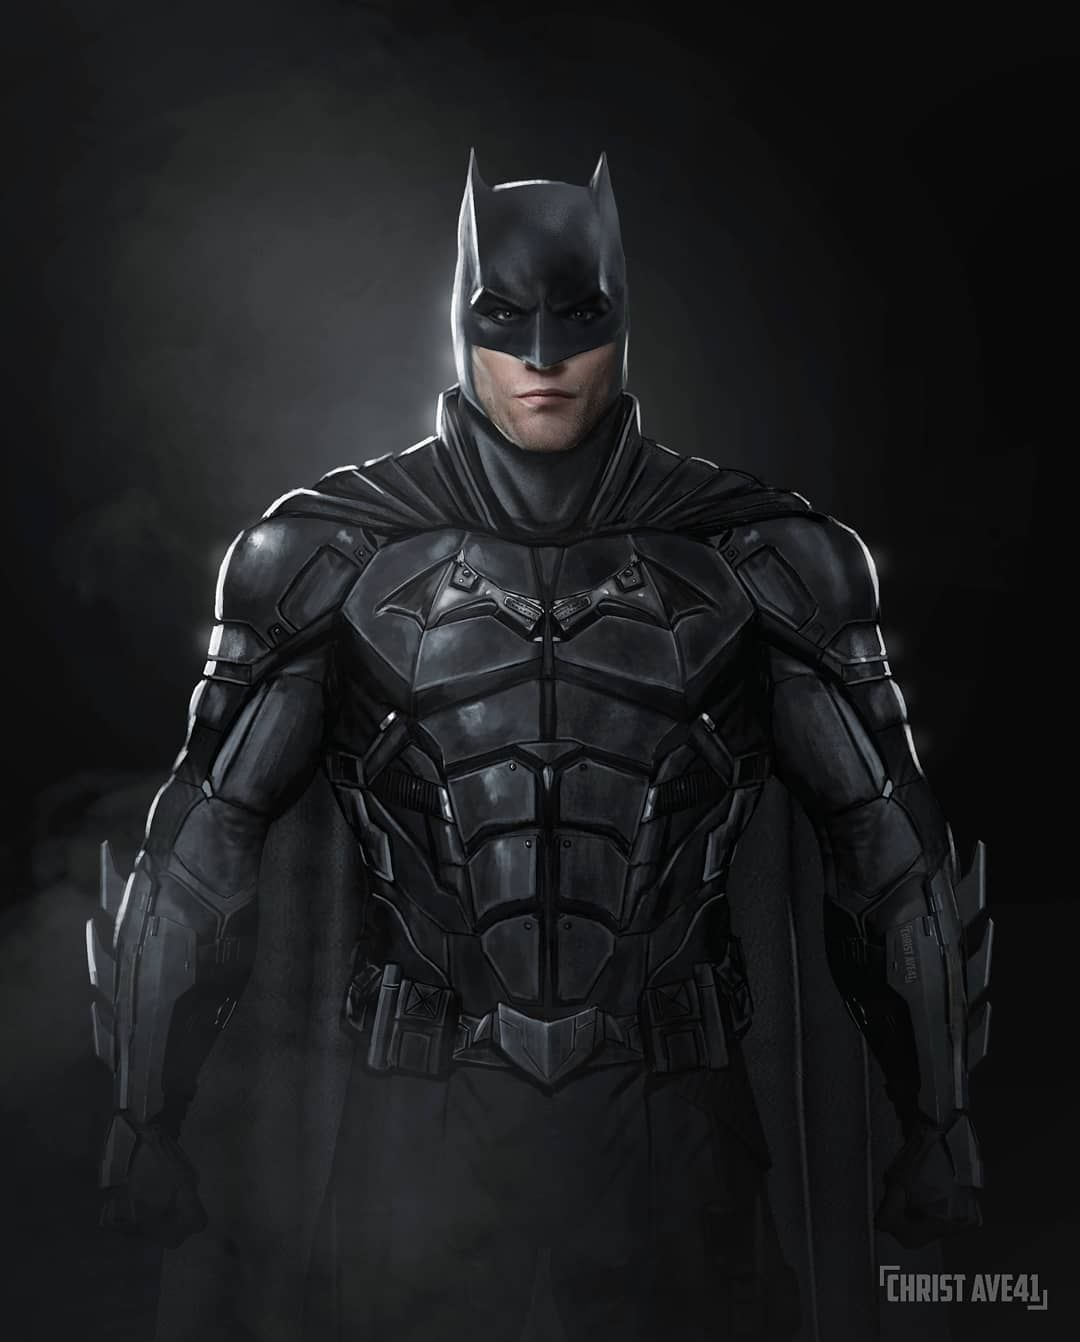 This is my shoot for Robert Pattinson #TheBatman suit ...